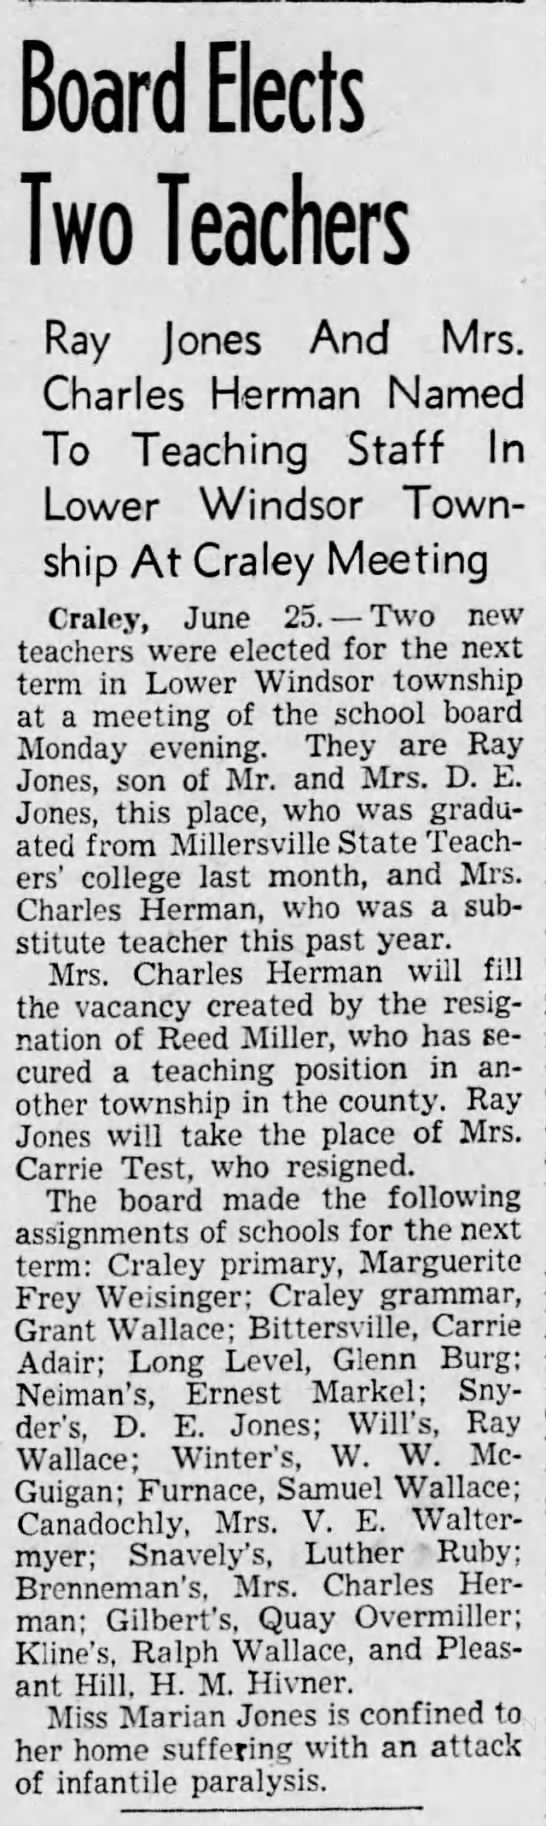 Ray Jones (1922-1996) Elected to School Board - Board Elects Two Teachers Ray Jones And Mrs....